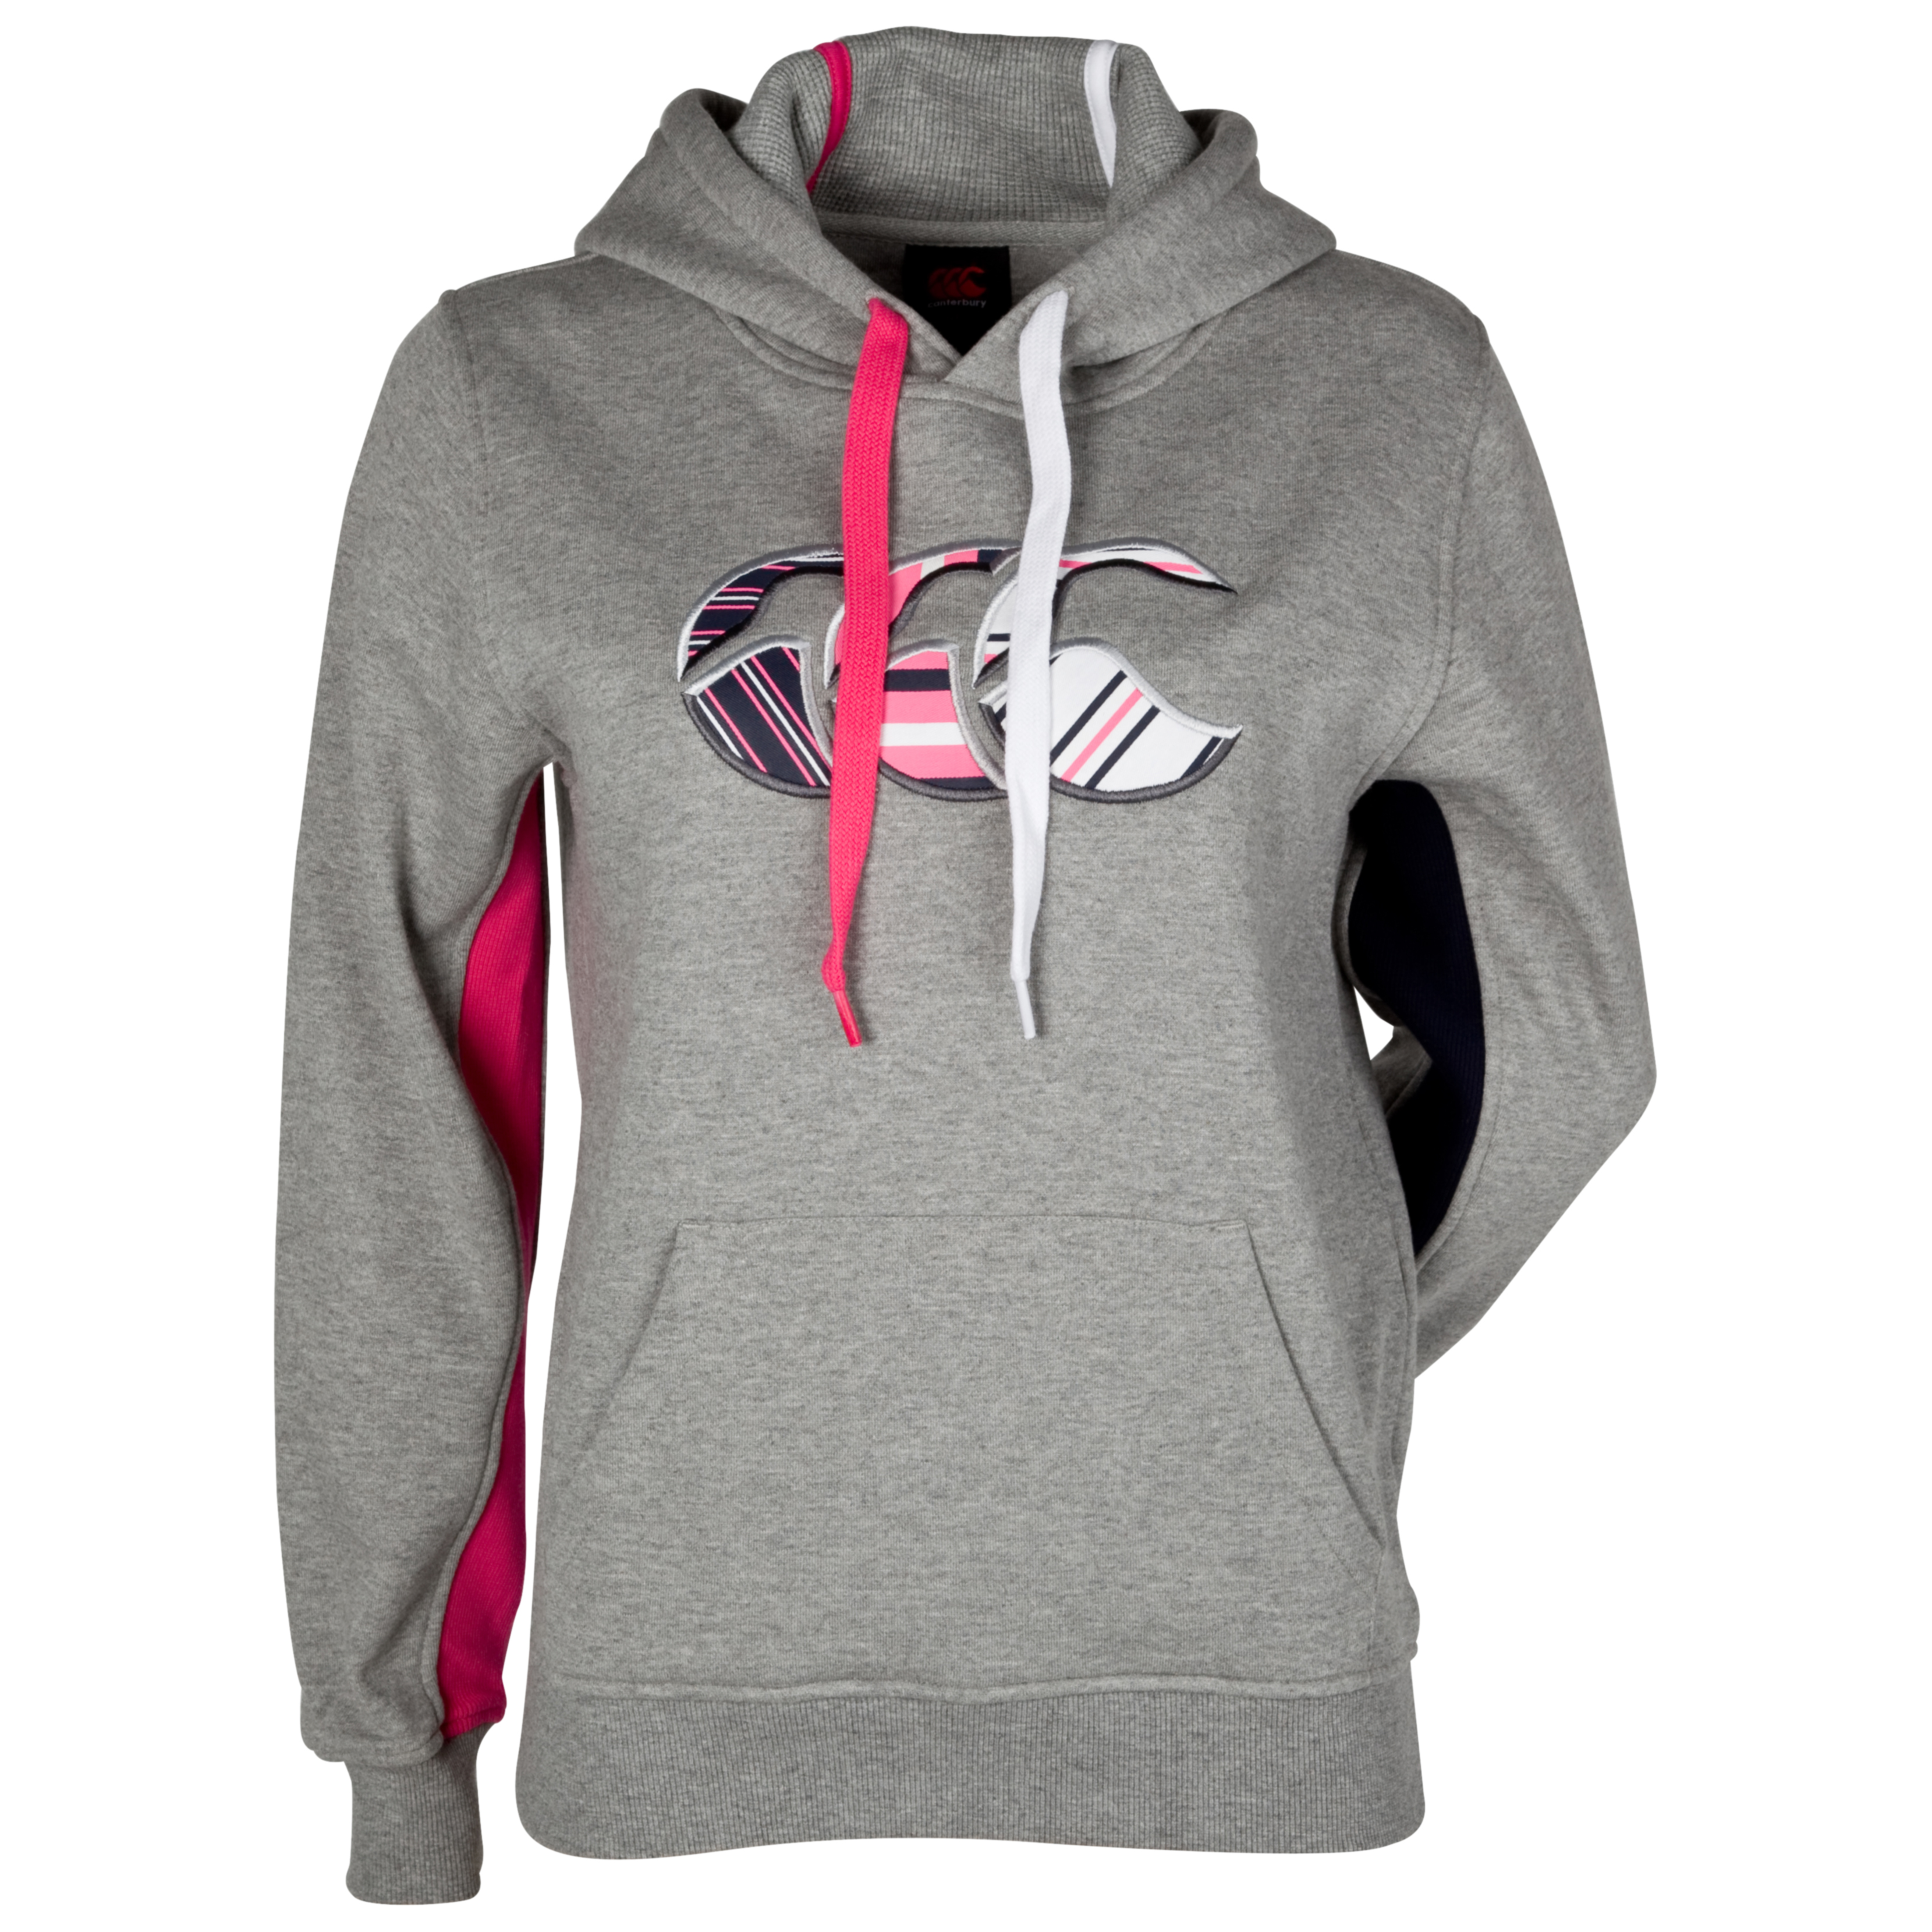 Canterbury Very Ugly Hoody - Sports Grey Marl. for 22€